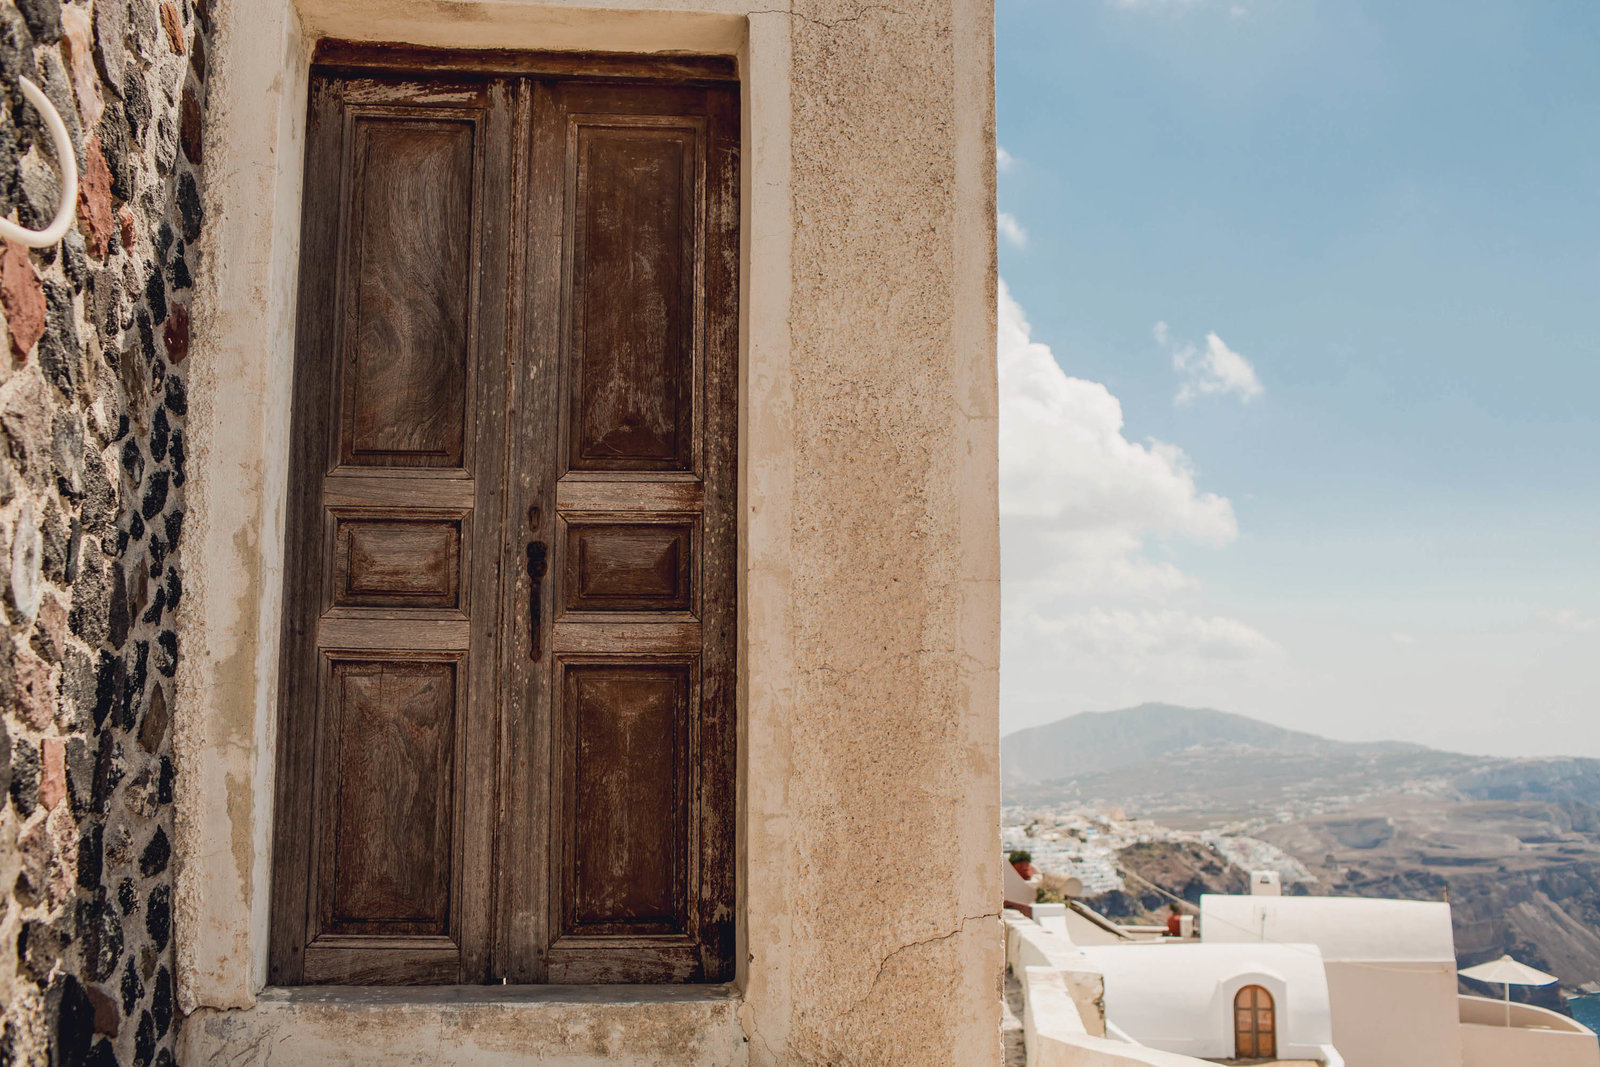 wood-door-destination-travel-santorini-wedding-kate-timbers-photo-2533